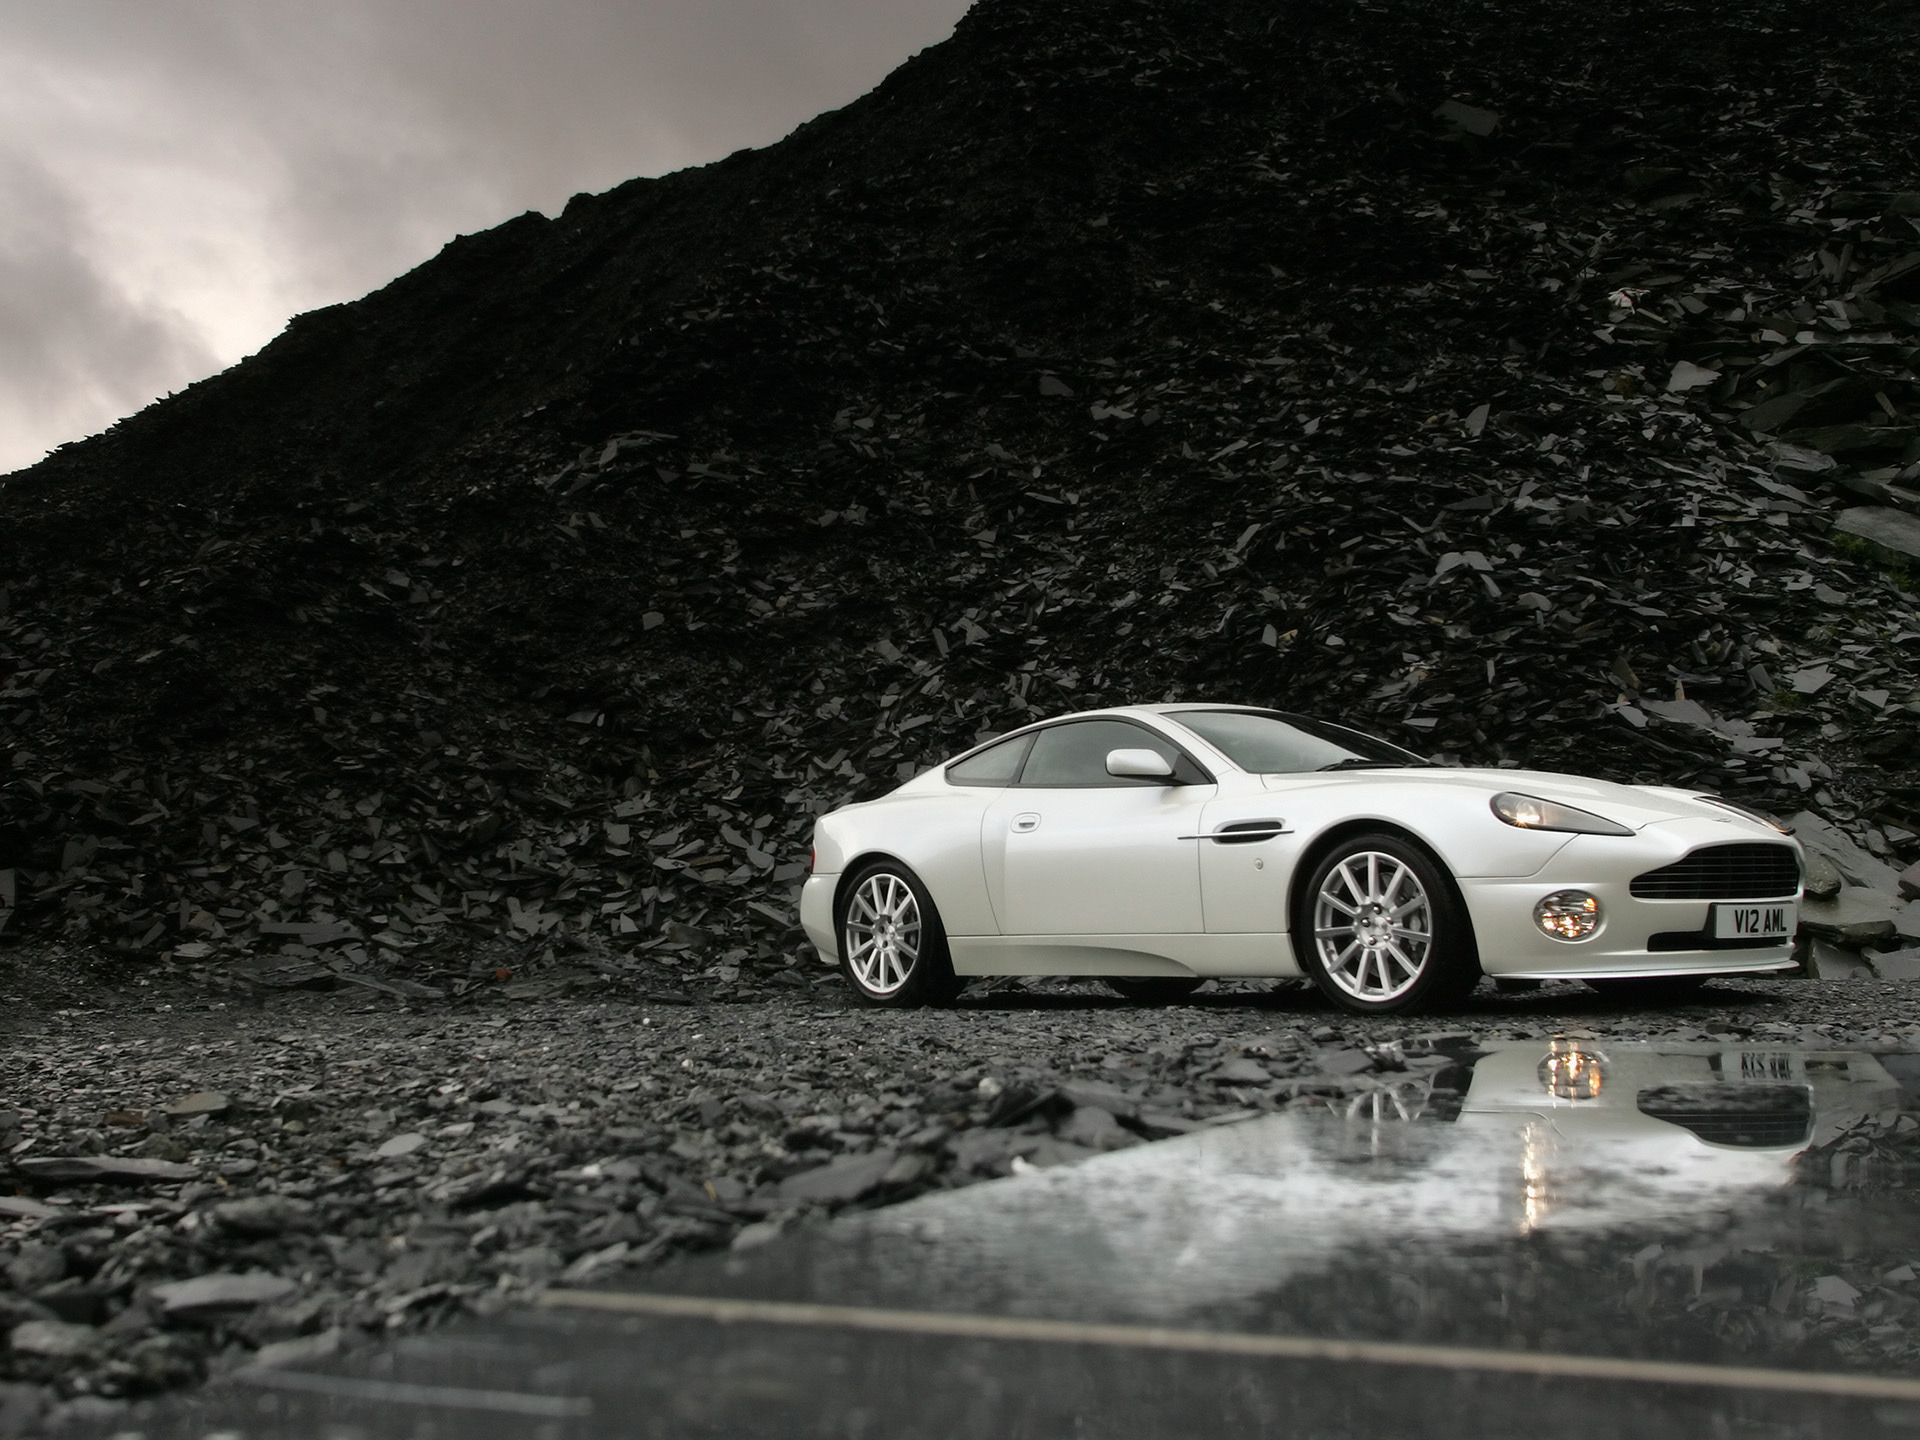 Aston Martin Vanquish HD Wallpaper Background Image 1920x1440 1920x1440